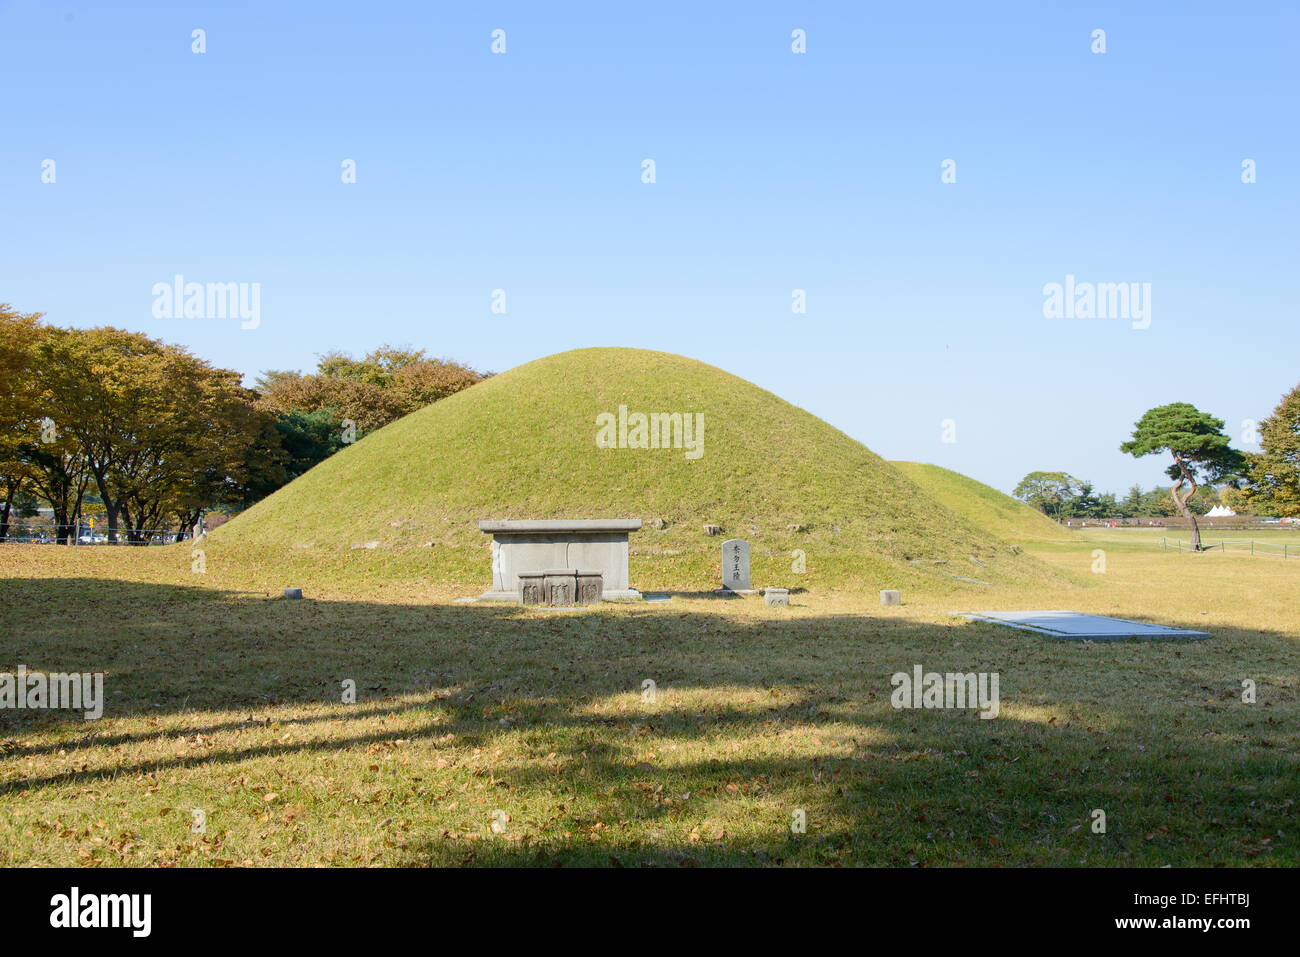 Gyeongju Royal Tomb of King Naemul. King Naemul is the monarch of the Silla kingdom in the history of Korea. Stock Photo